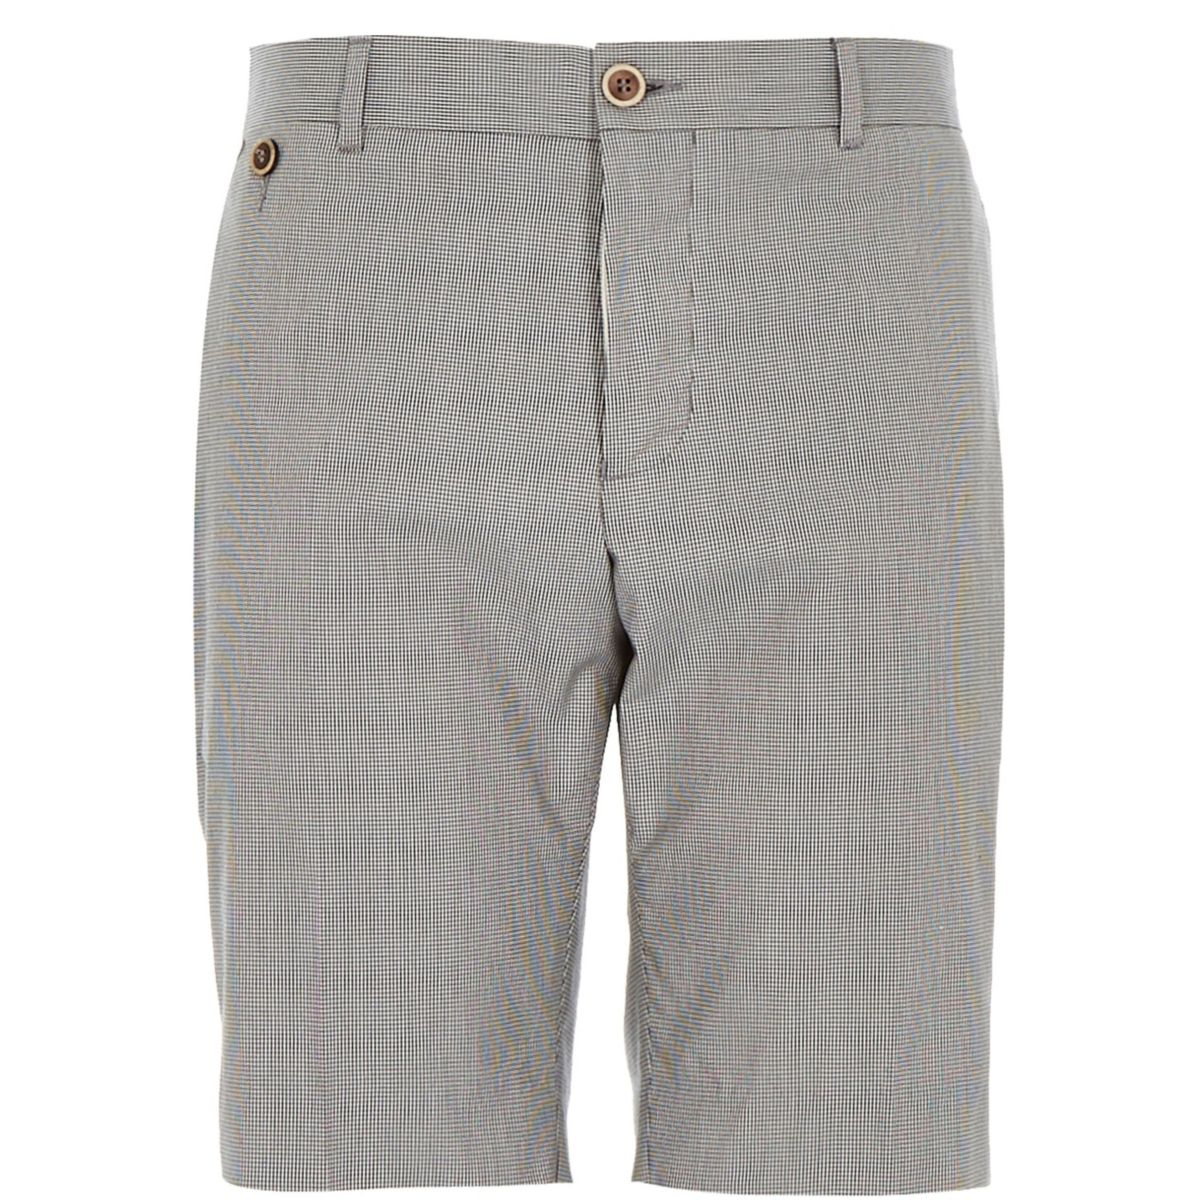 Navy tailored dogtooth shorts